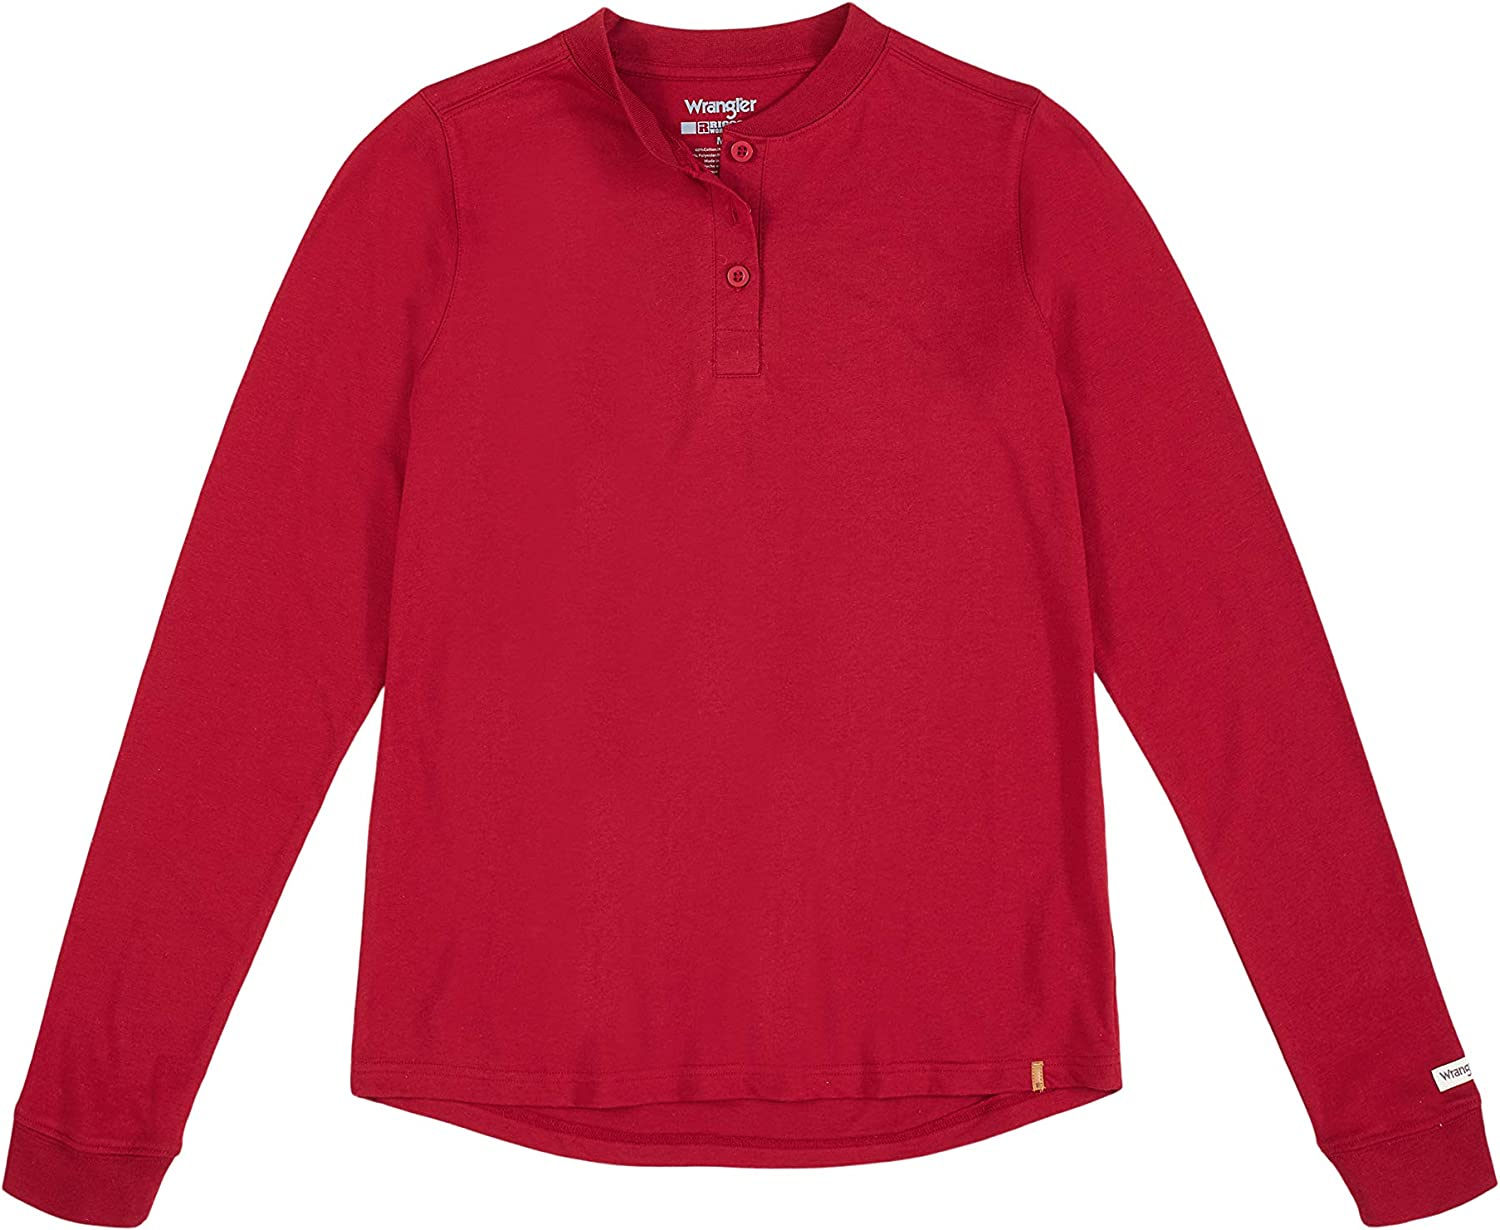 Wrangler Riggs Workwear Women's Long Sleeve Henley: Clothing, Shoes & Jewelry